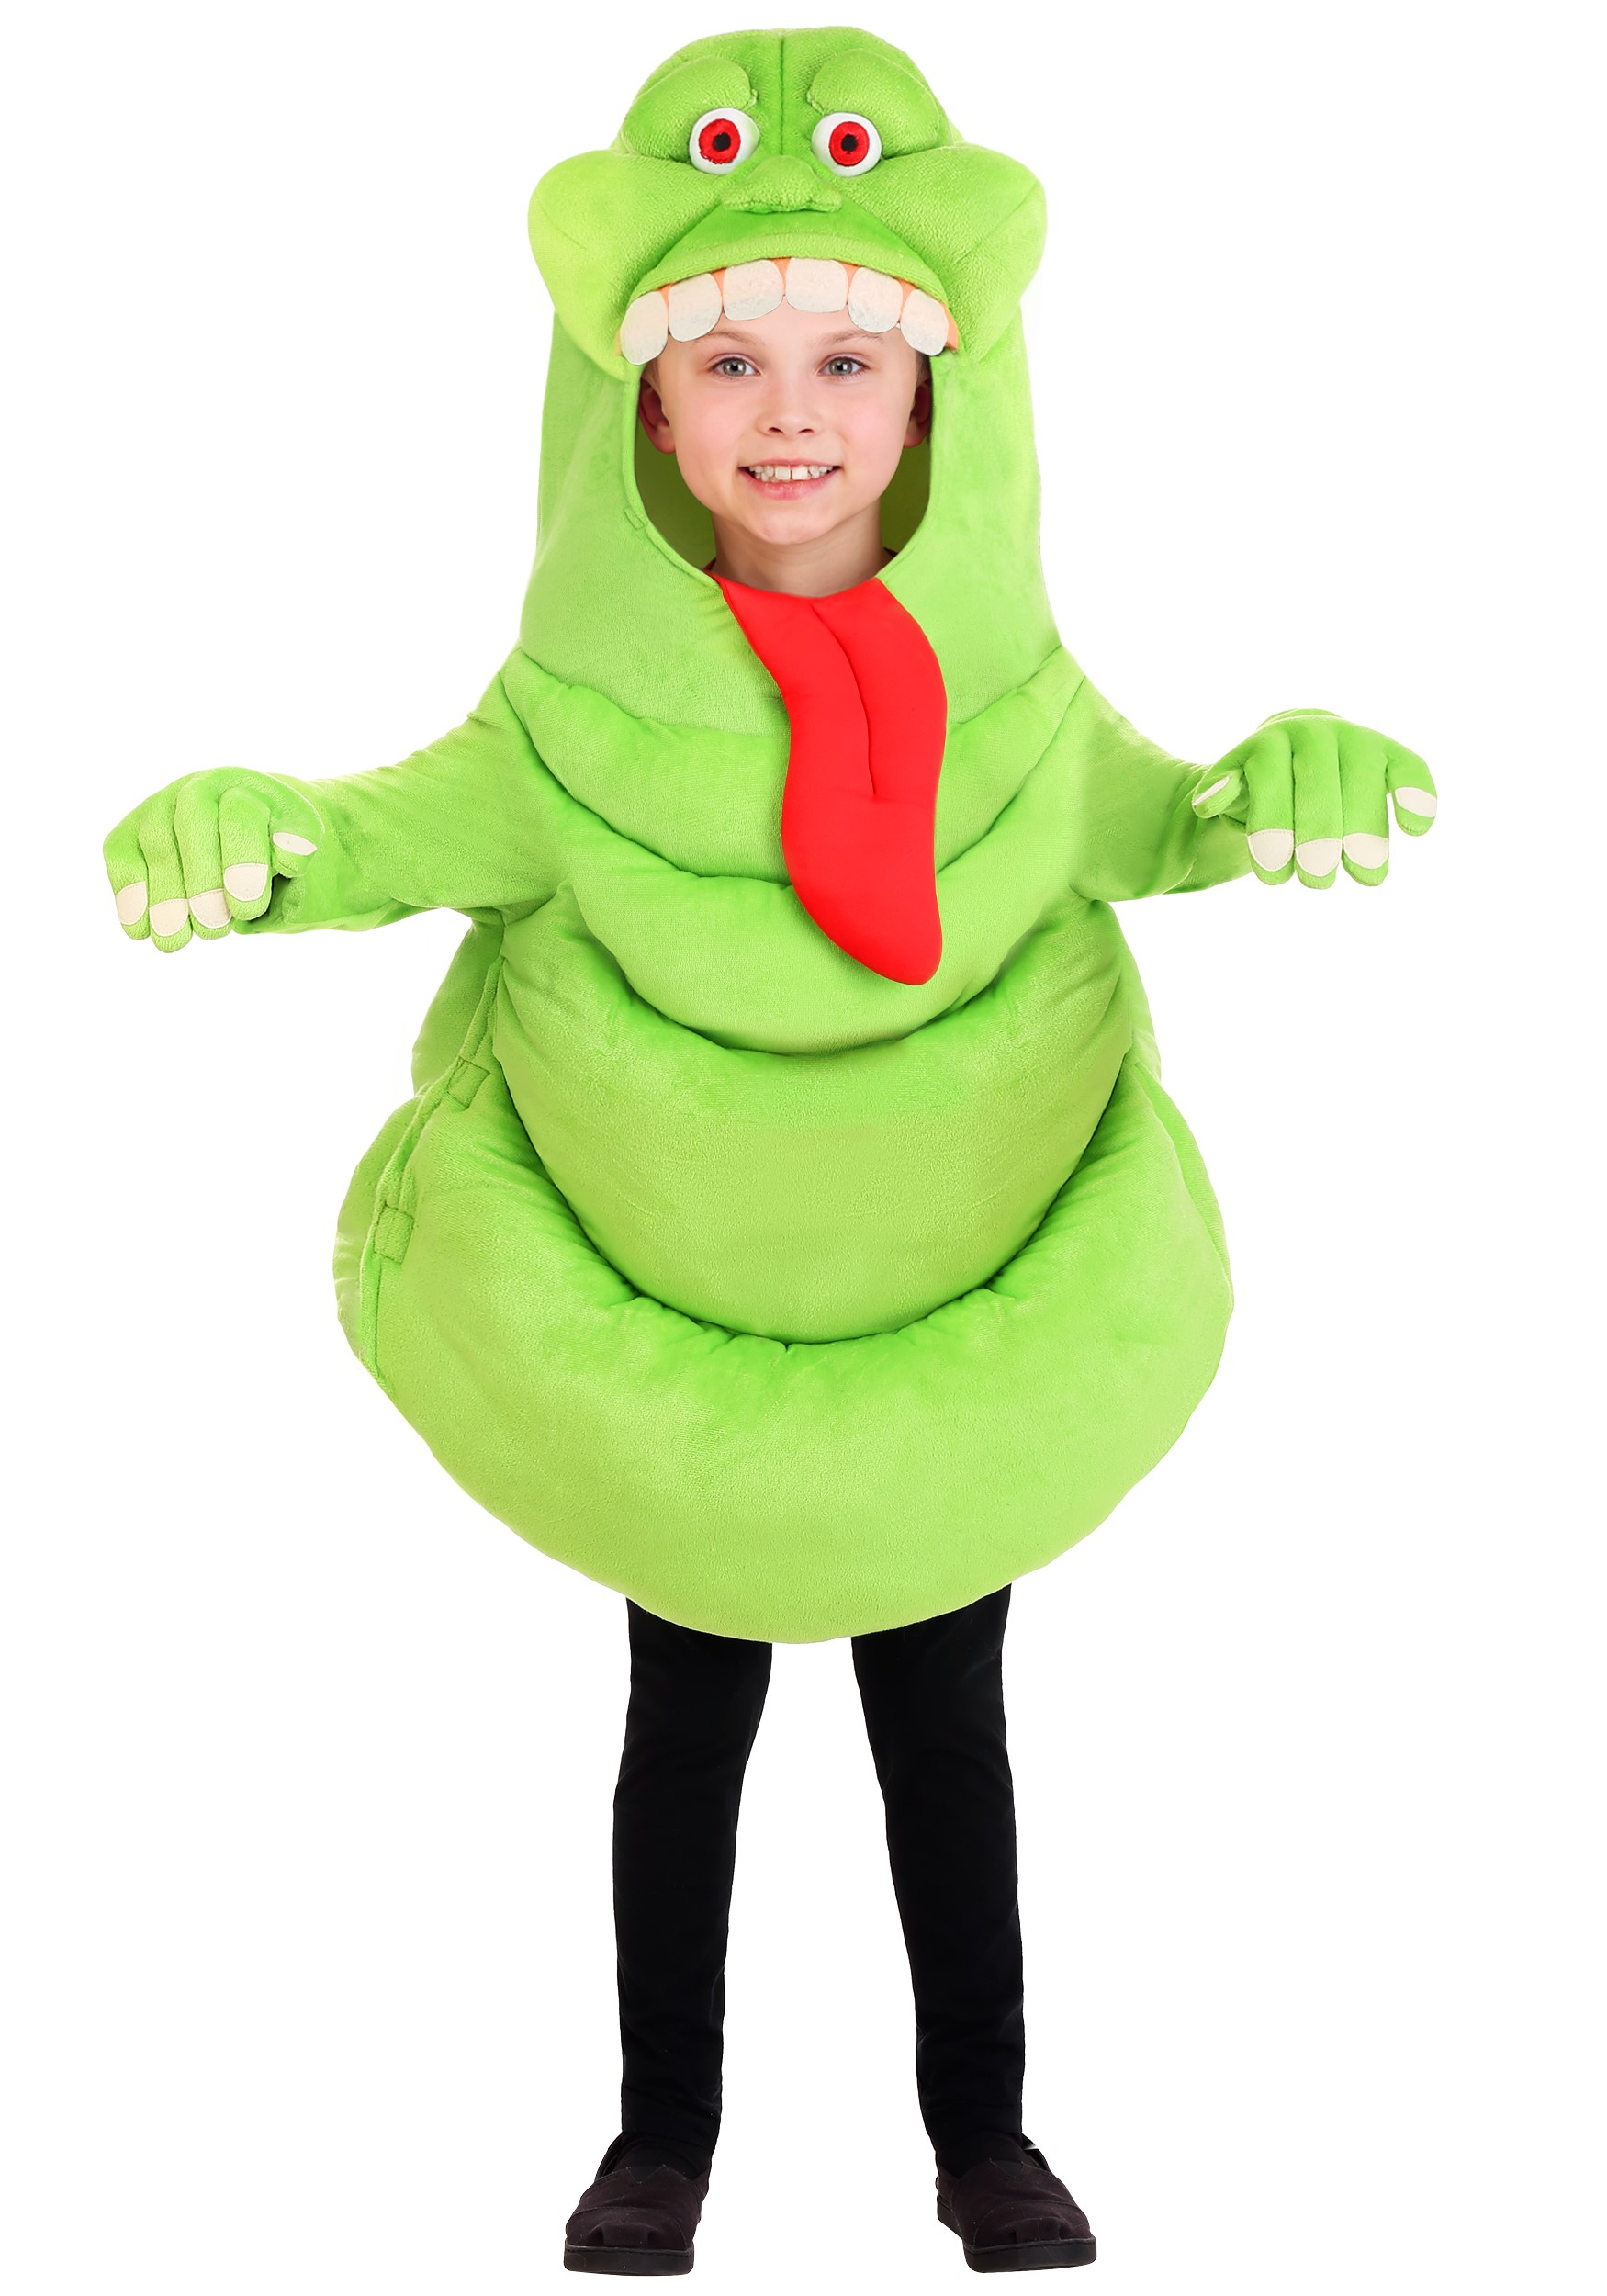 Kid's Ghostbusters Slimer Costume Tunic With Gloves